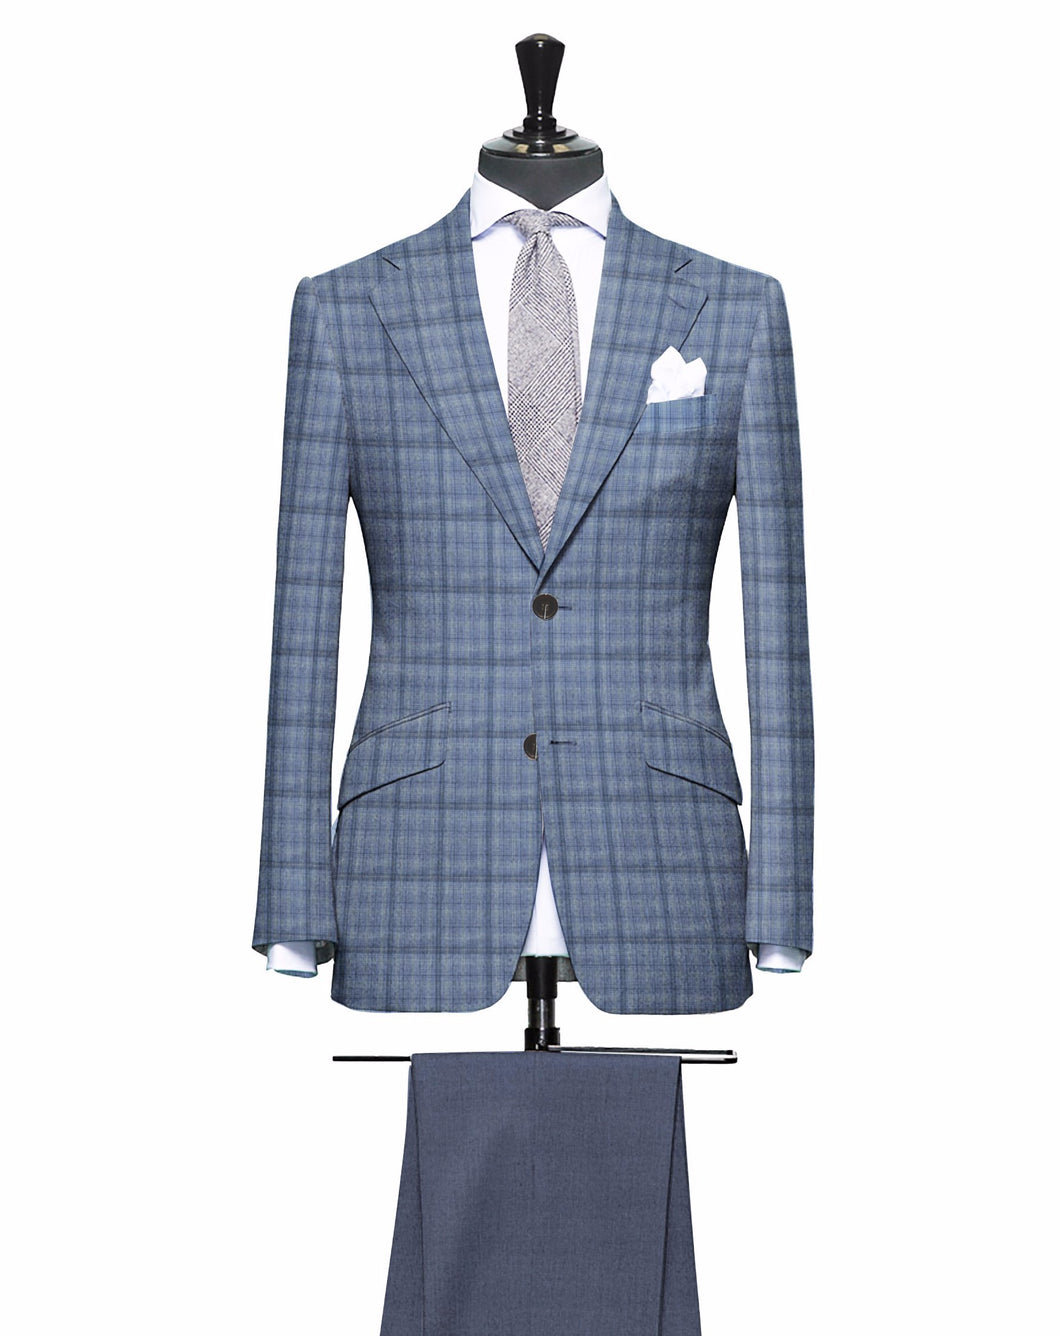 Shades of Steel Blue with Subtle Lime Pattern, Matching Steel Pants, Super 150, Wool